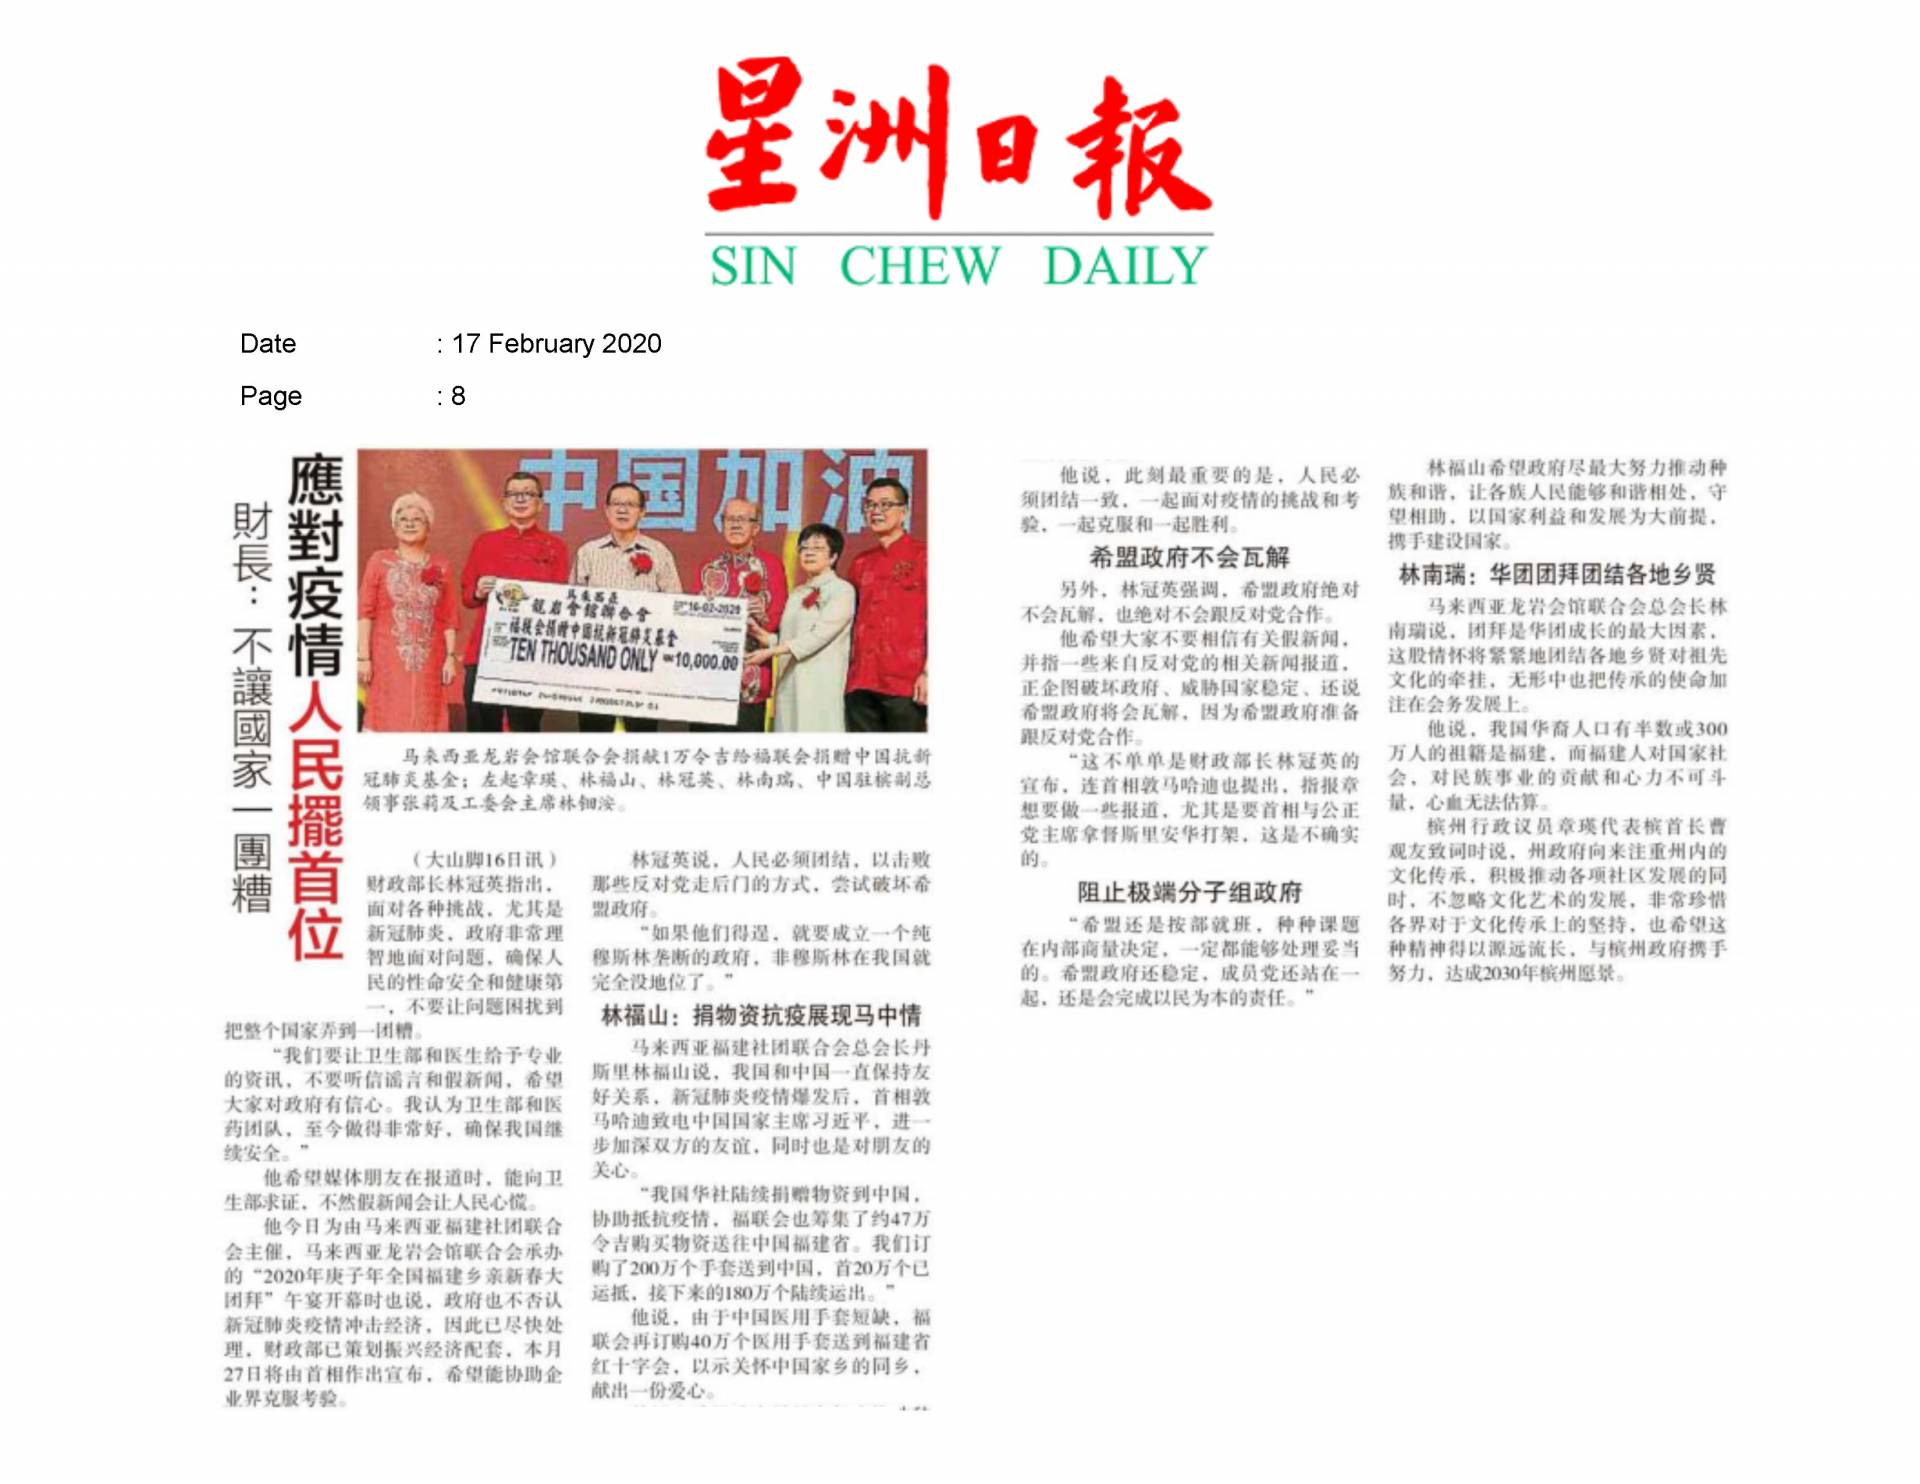 2020.02.17 Sin Chew - People first when comes to the fight against epidemic